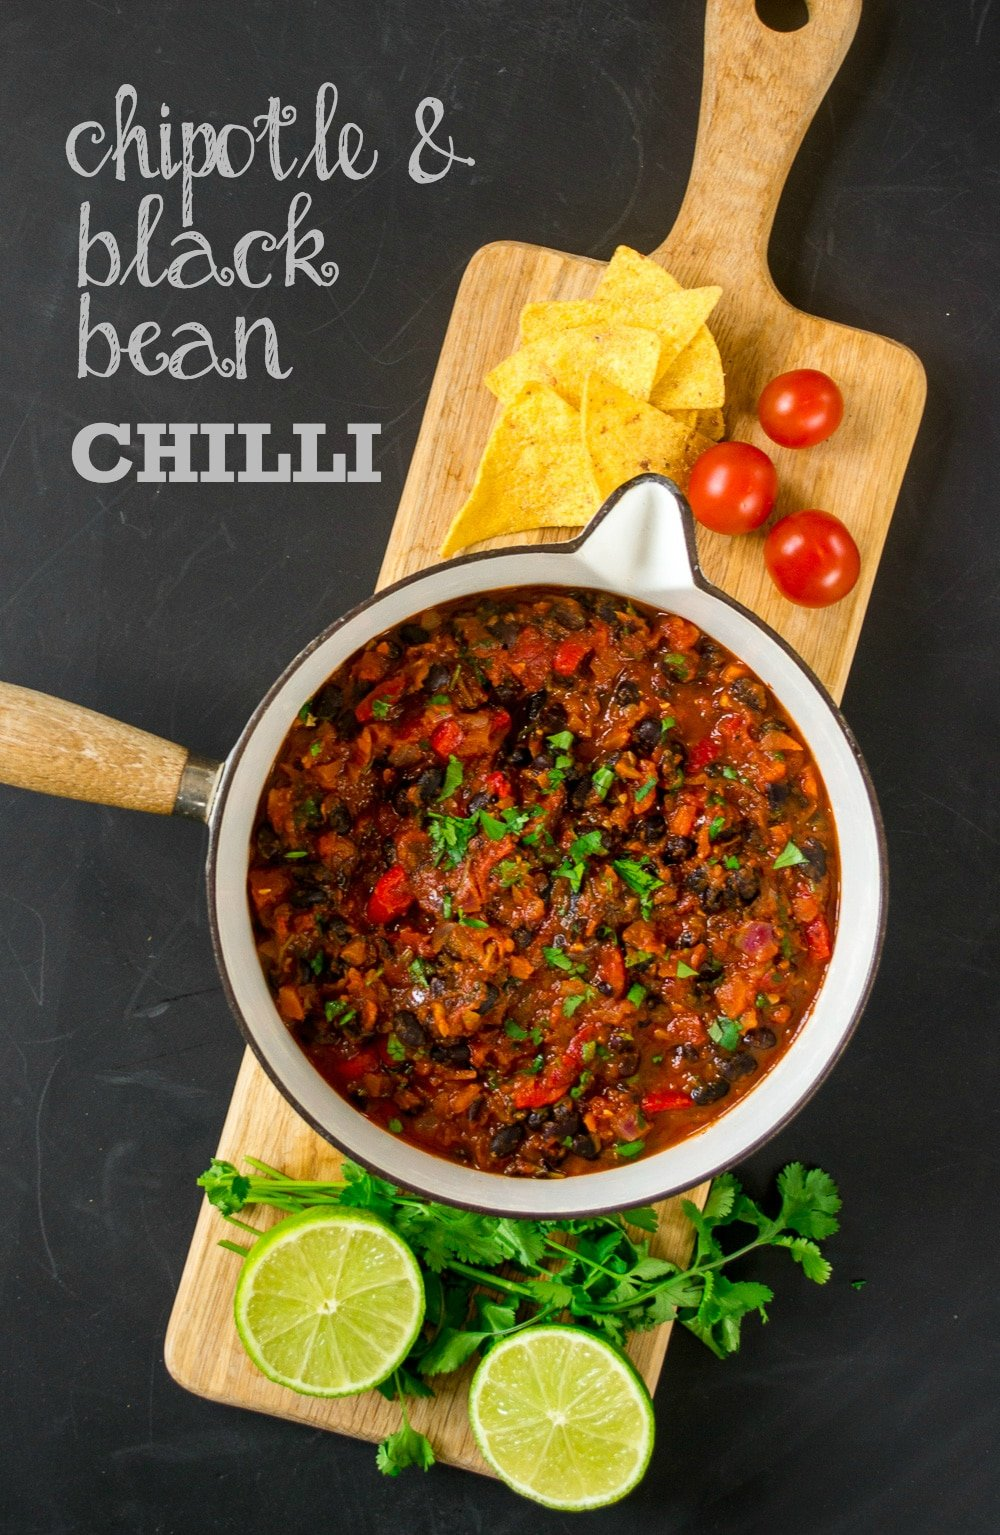 Chipotle & Black Bean Chilli (Vegan)